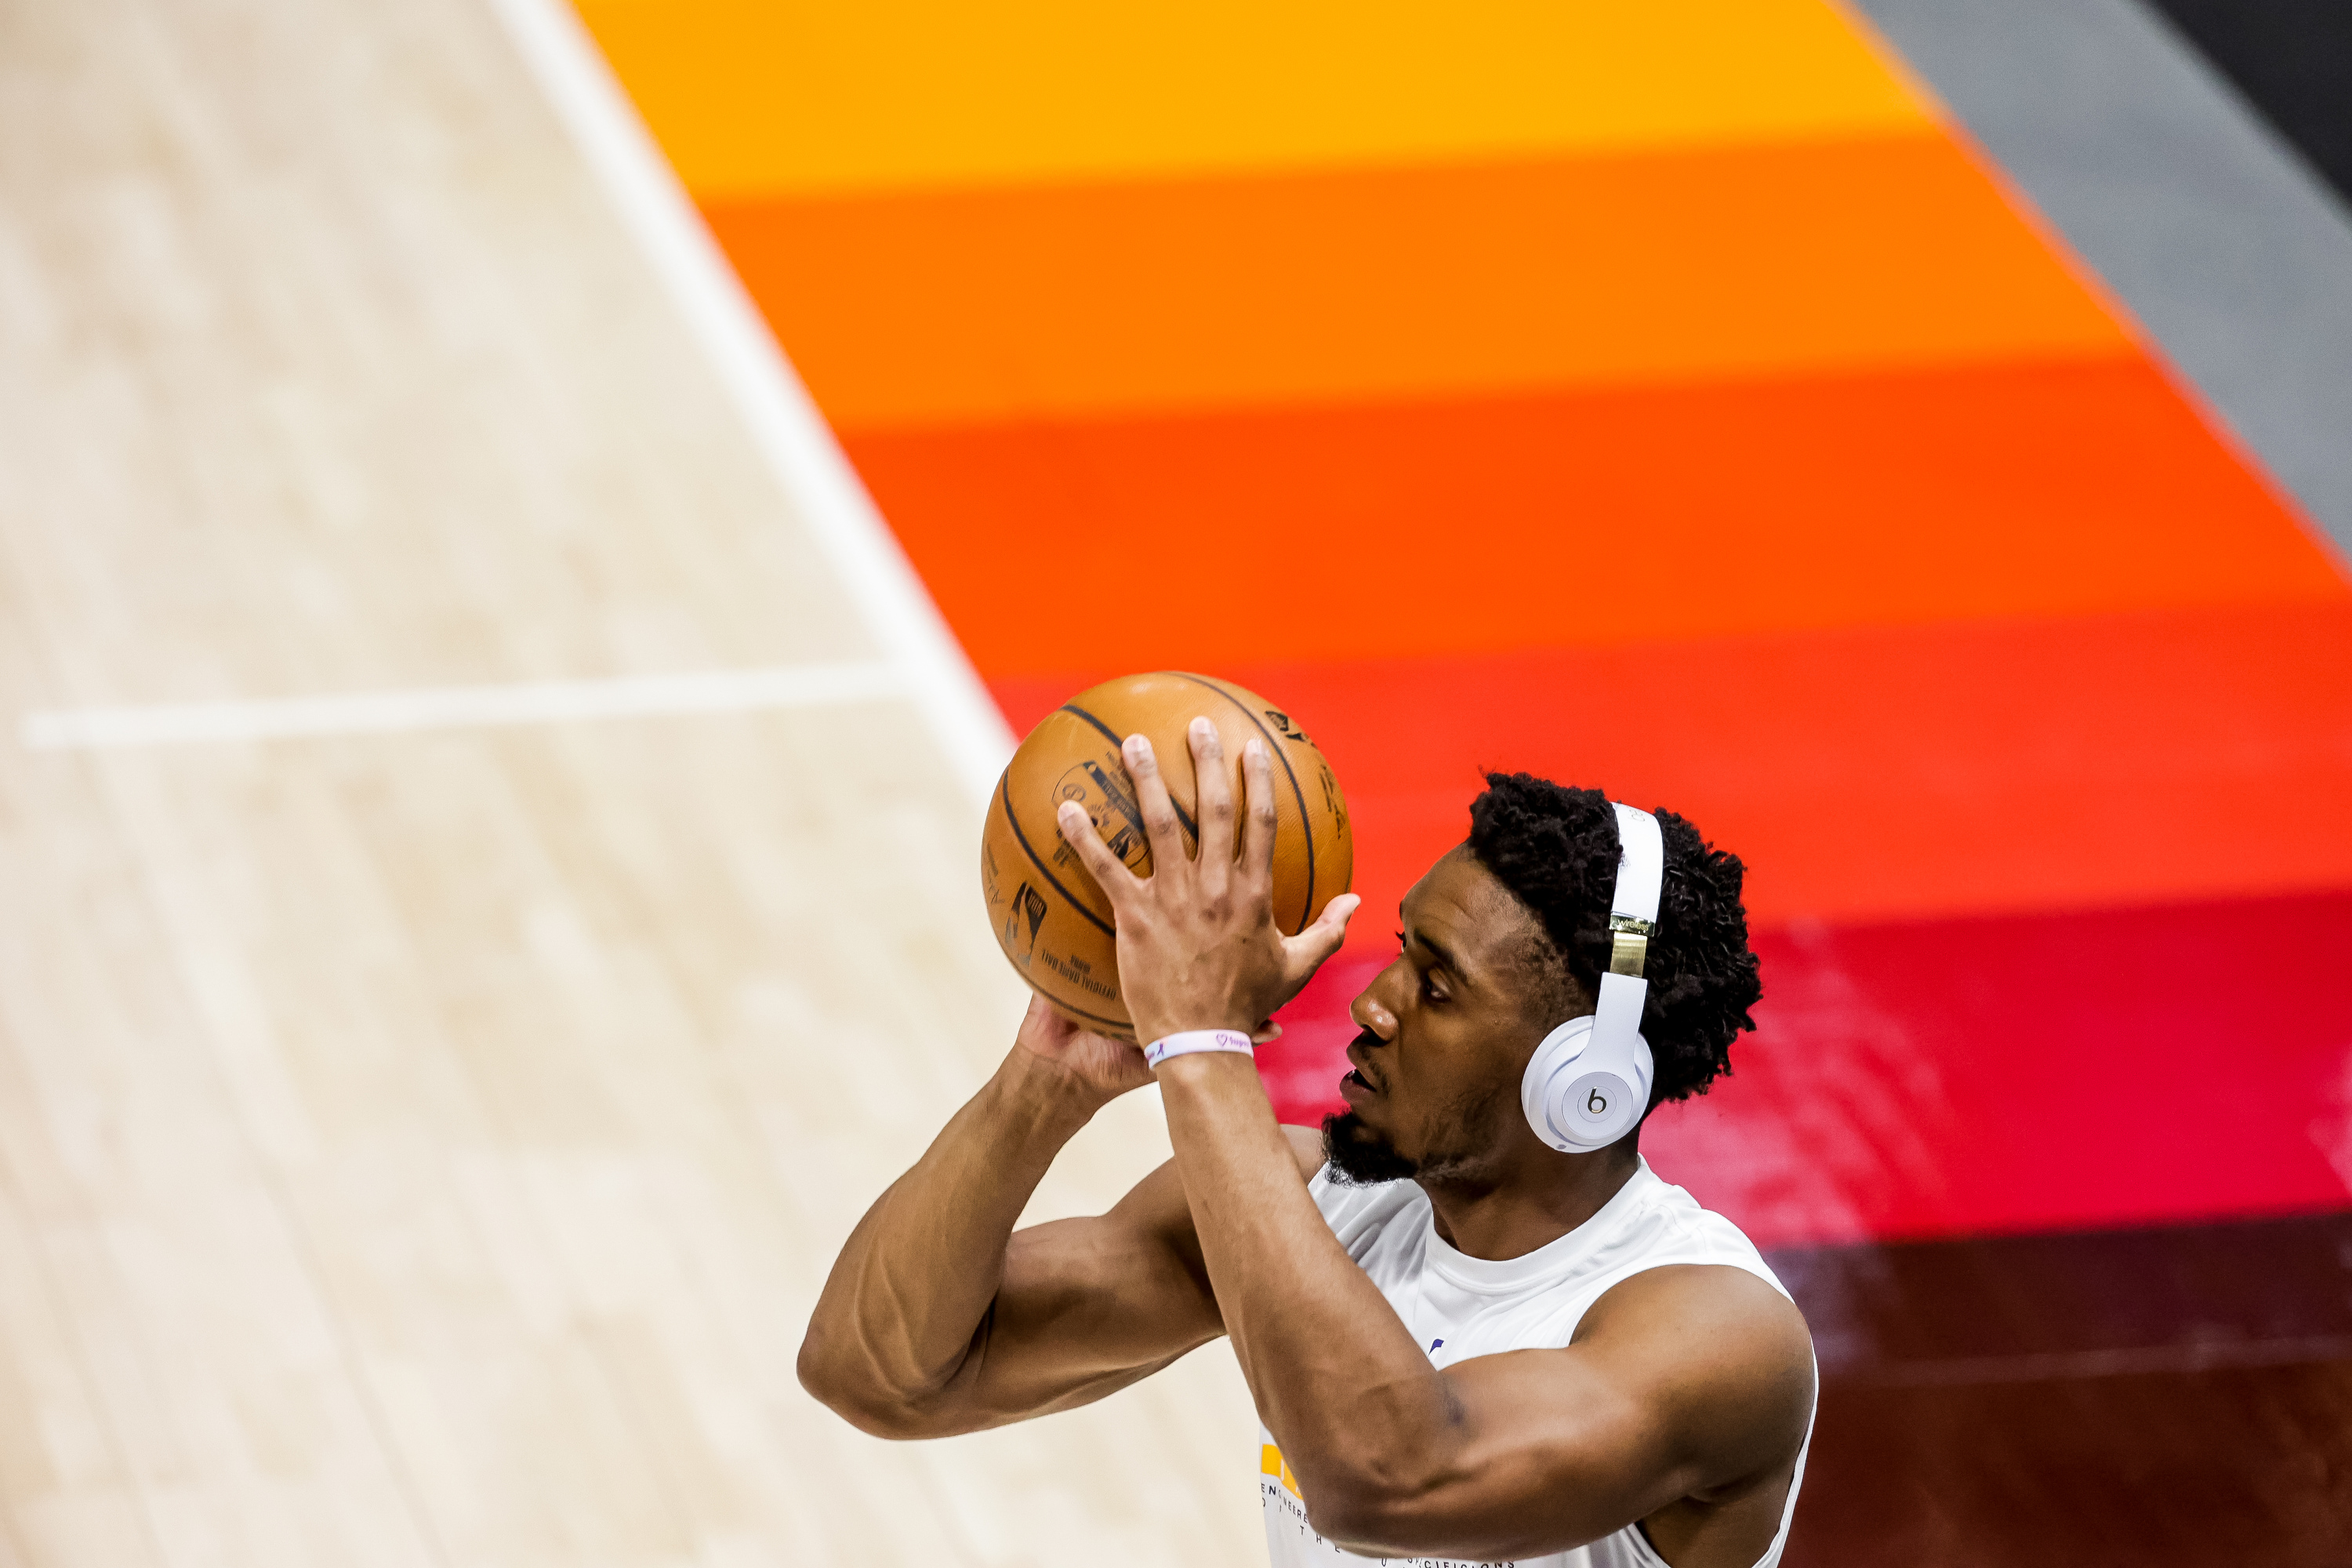 Utah Jazz guard Donovan Mitchell (45) warms up before the game against the Oklahoma City Thunder at Vivint Smart Home Arena in Salt Lake City on Tuesday, April 13, 2021.